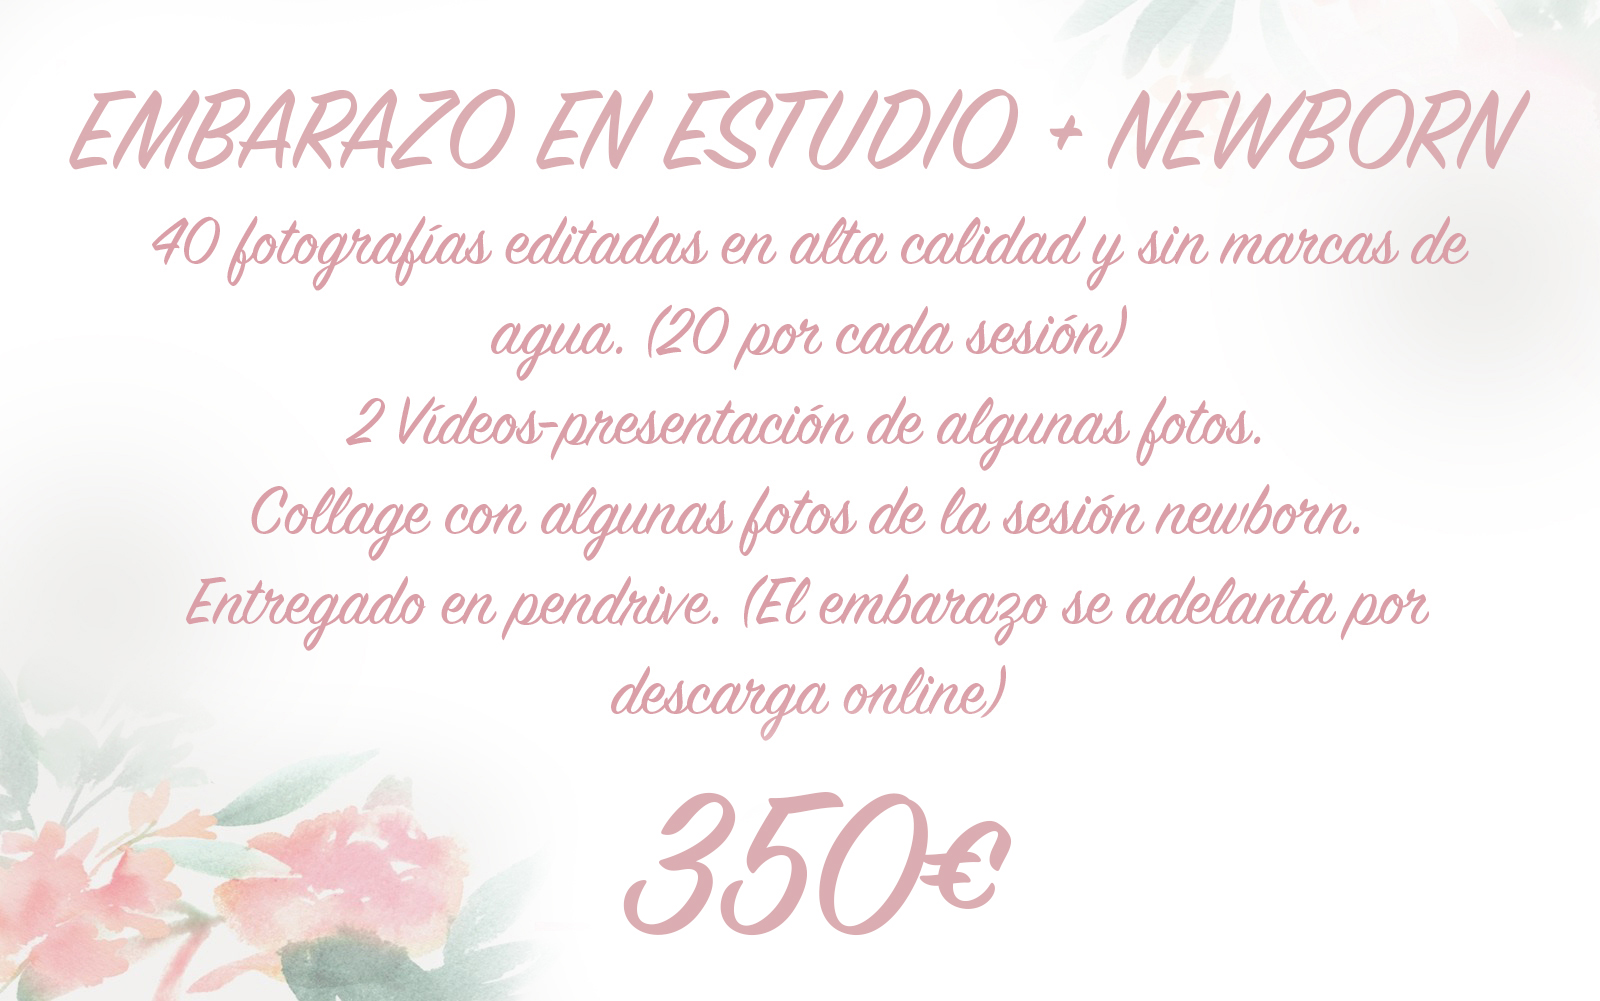 estudio más newborn copia